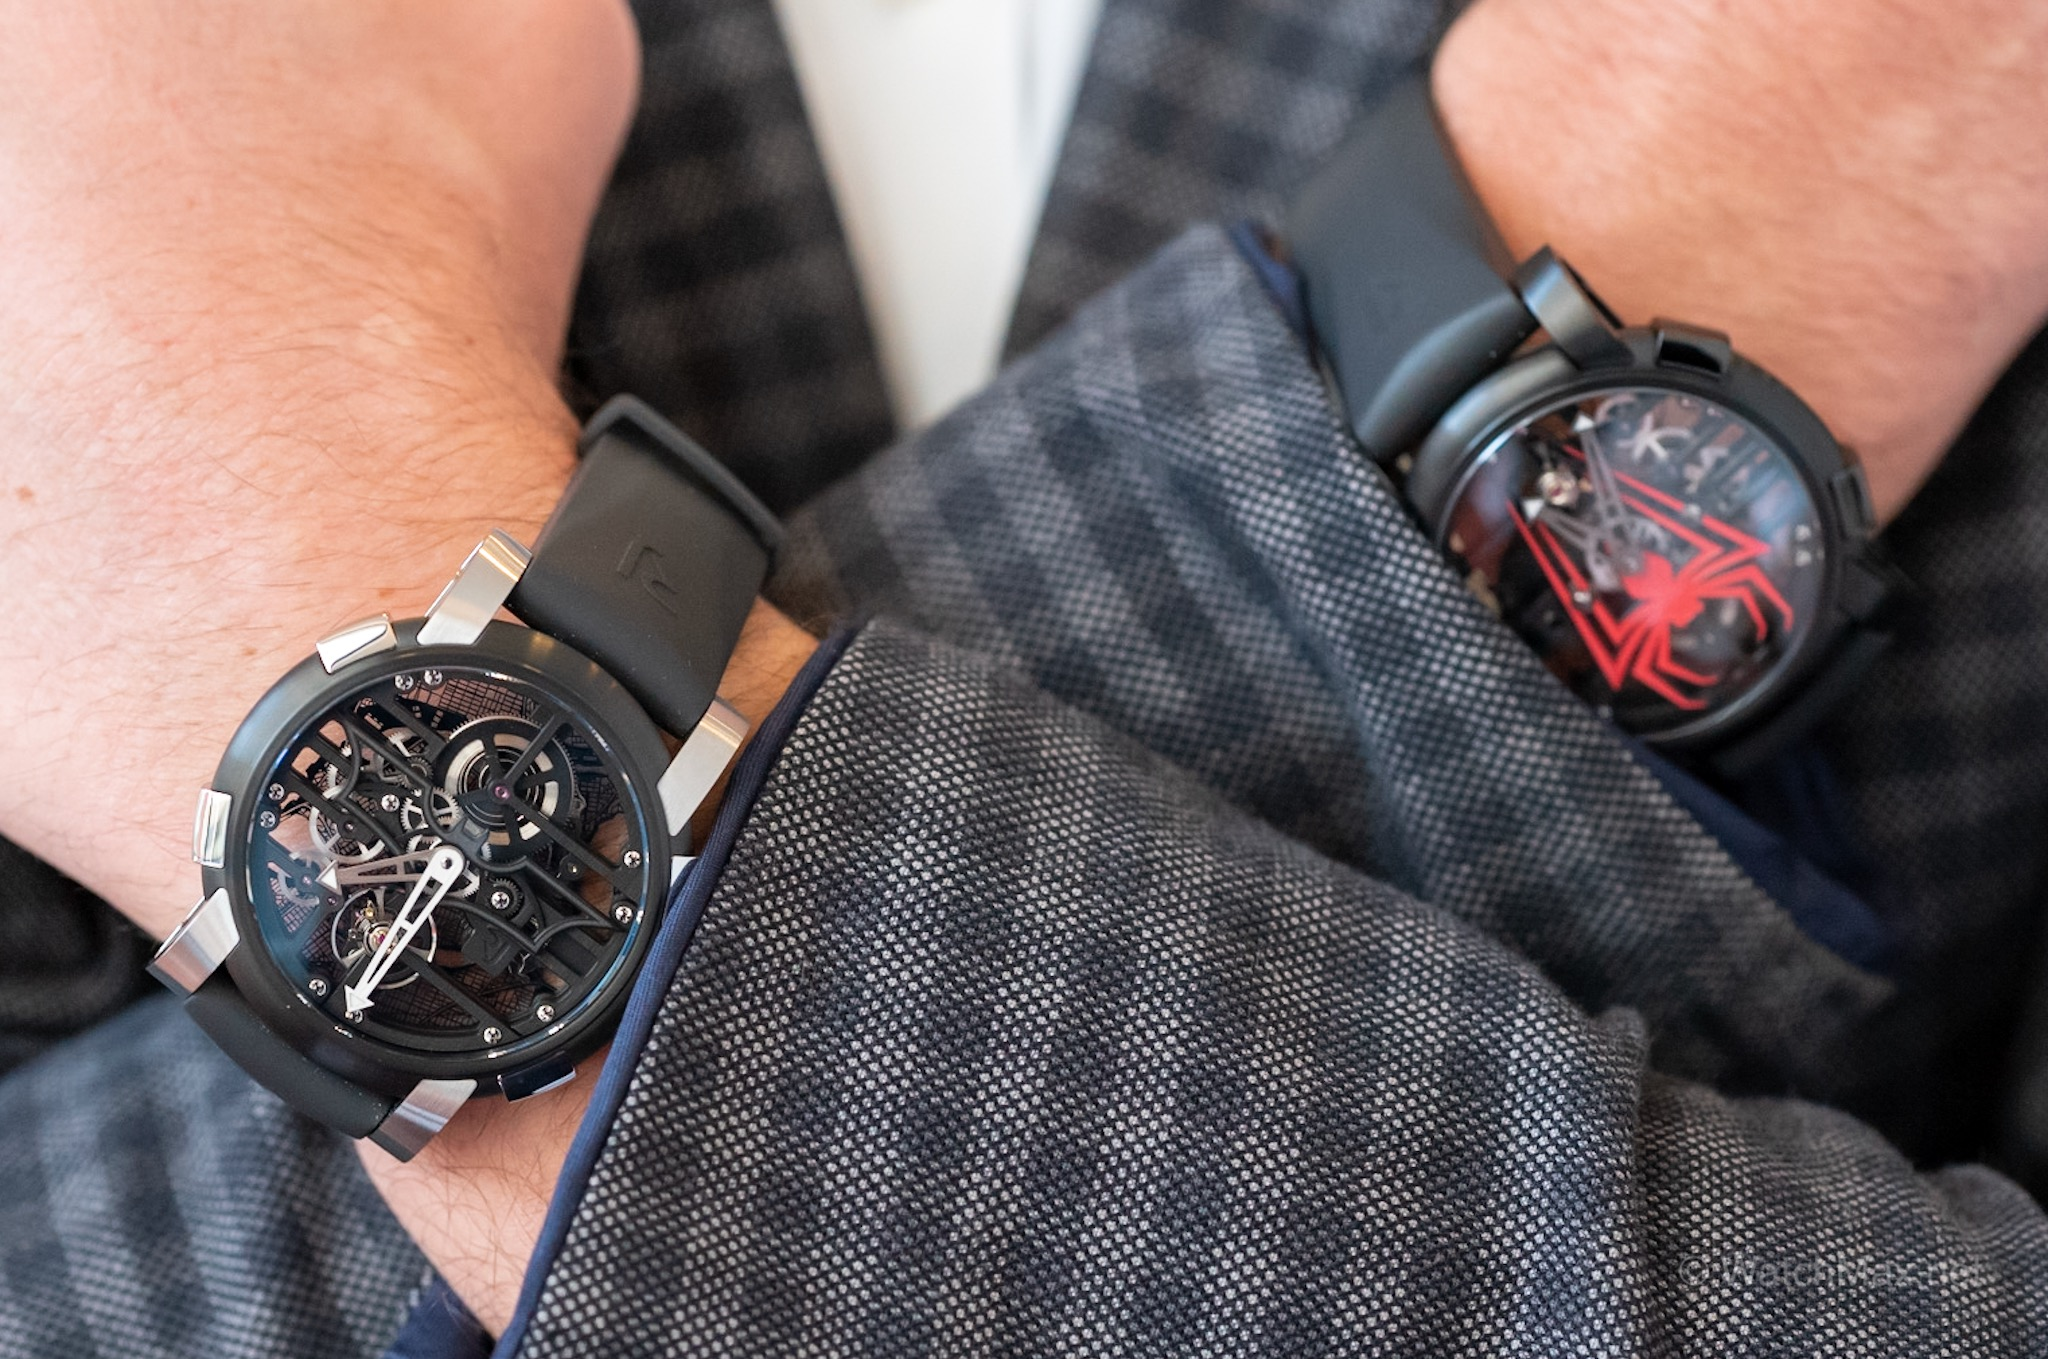 RJ's previous Superheroes watches representing DC Comic's and Marvel Comic's favorites: Batman and Spiderman